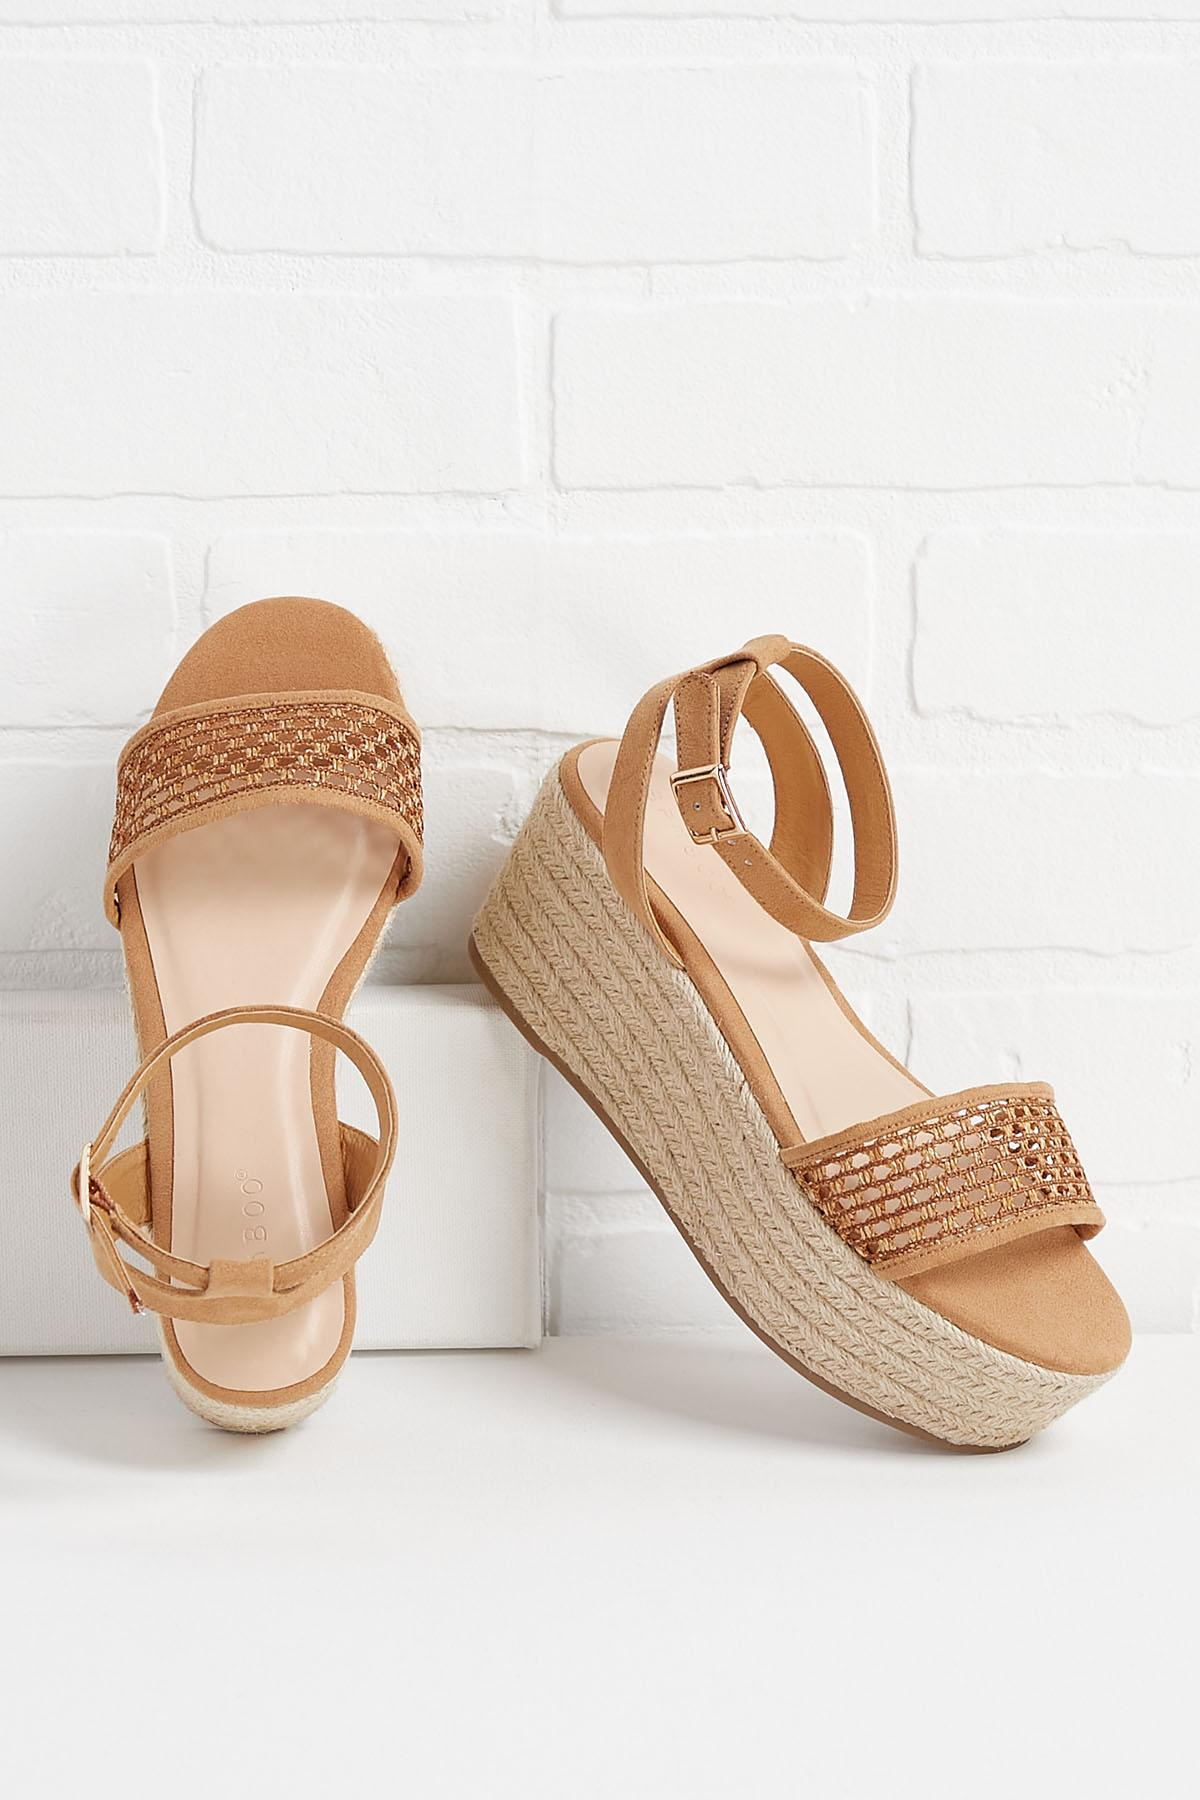 Straw Or Nothing Sandals